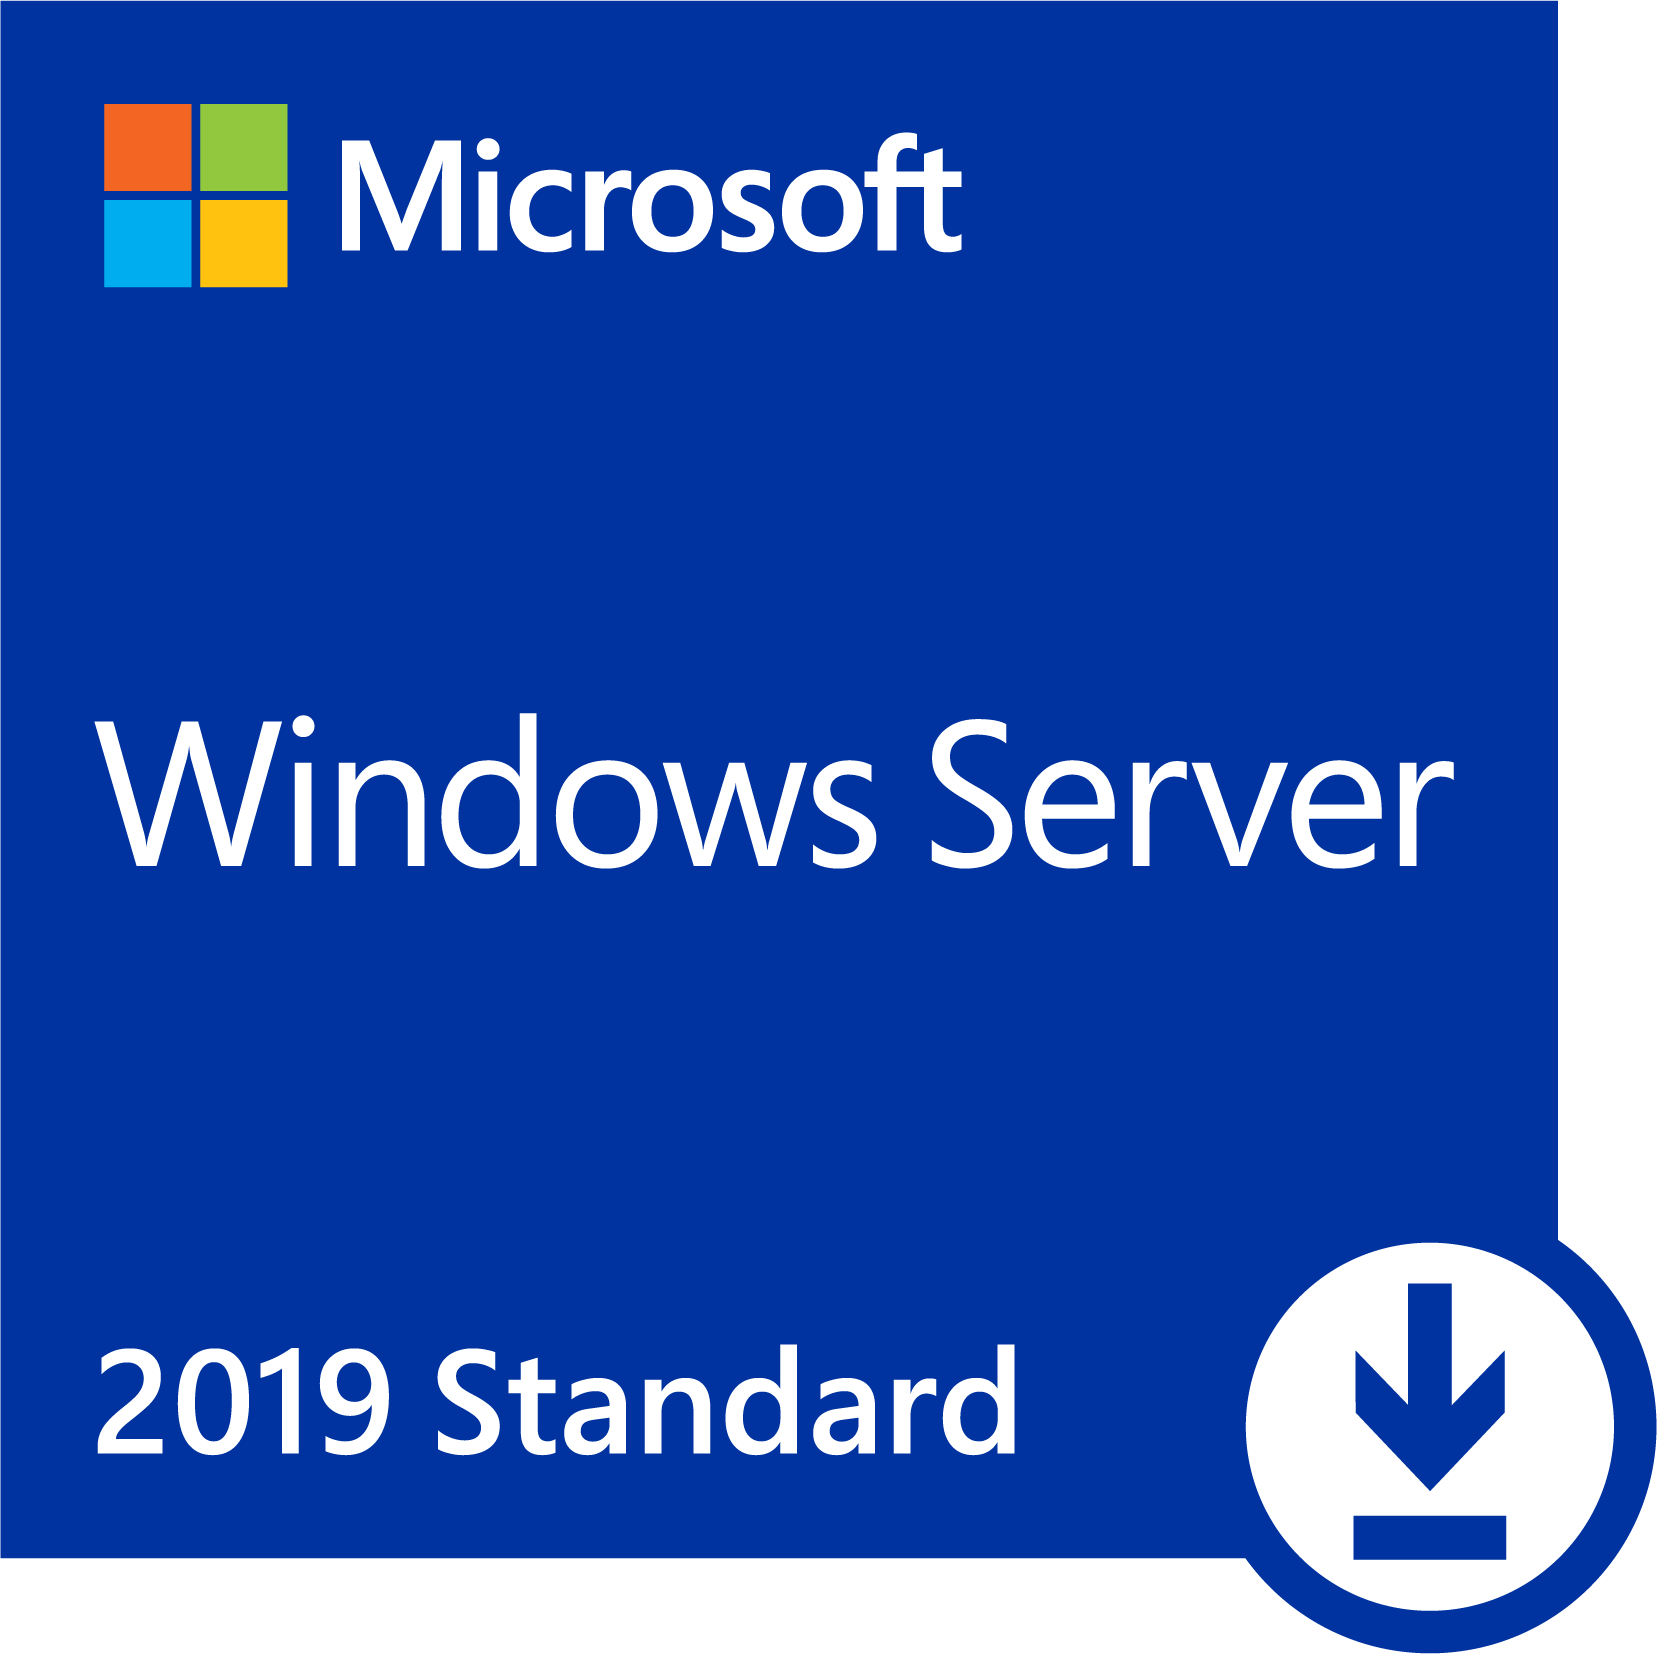 Microsoft Windows Remote Desktop Services UsrCAL 2019, бессрочная, на пользователя (WinRmtDsktpSrvcsCAL 2019 RUS OLV D Each AP UsrCAL) (для государственной организации)